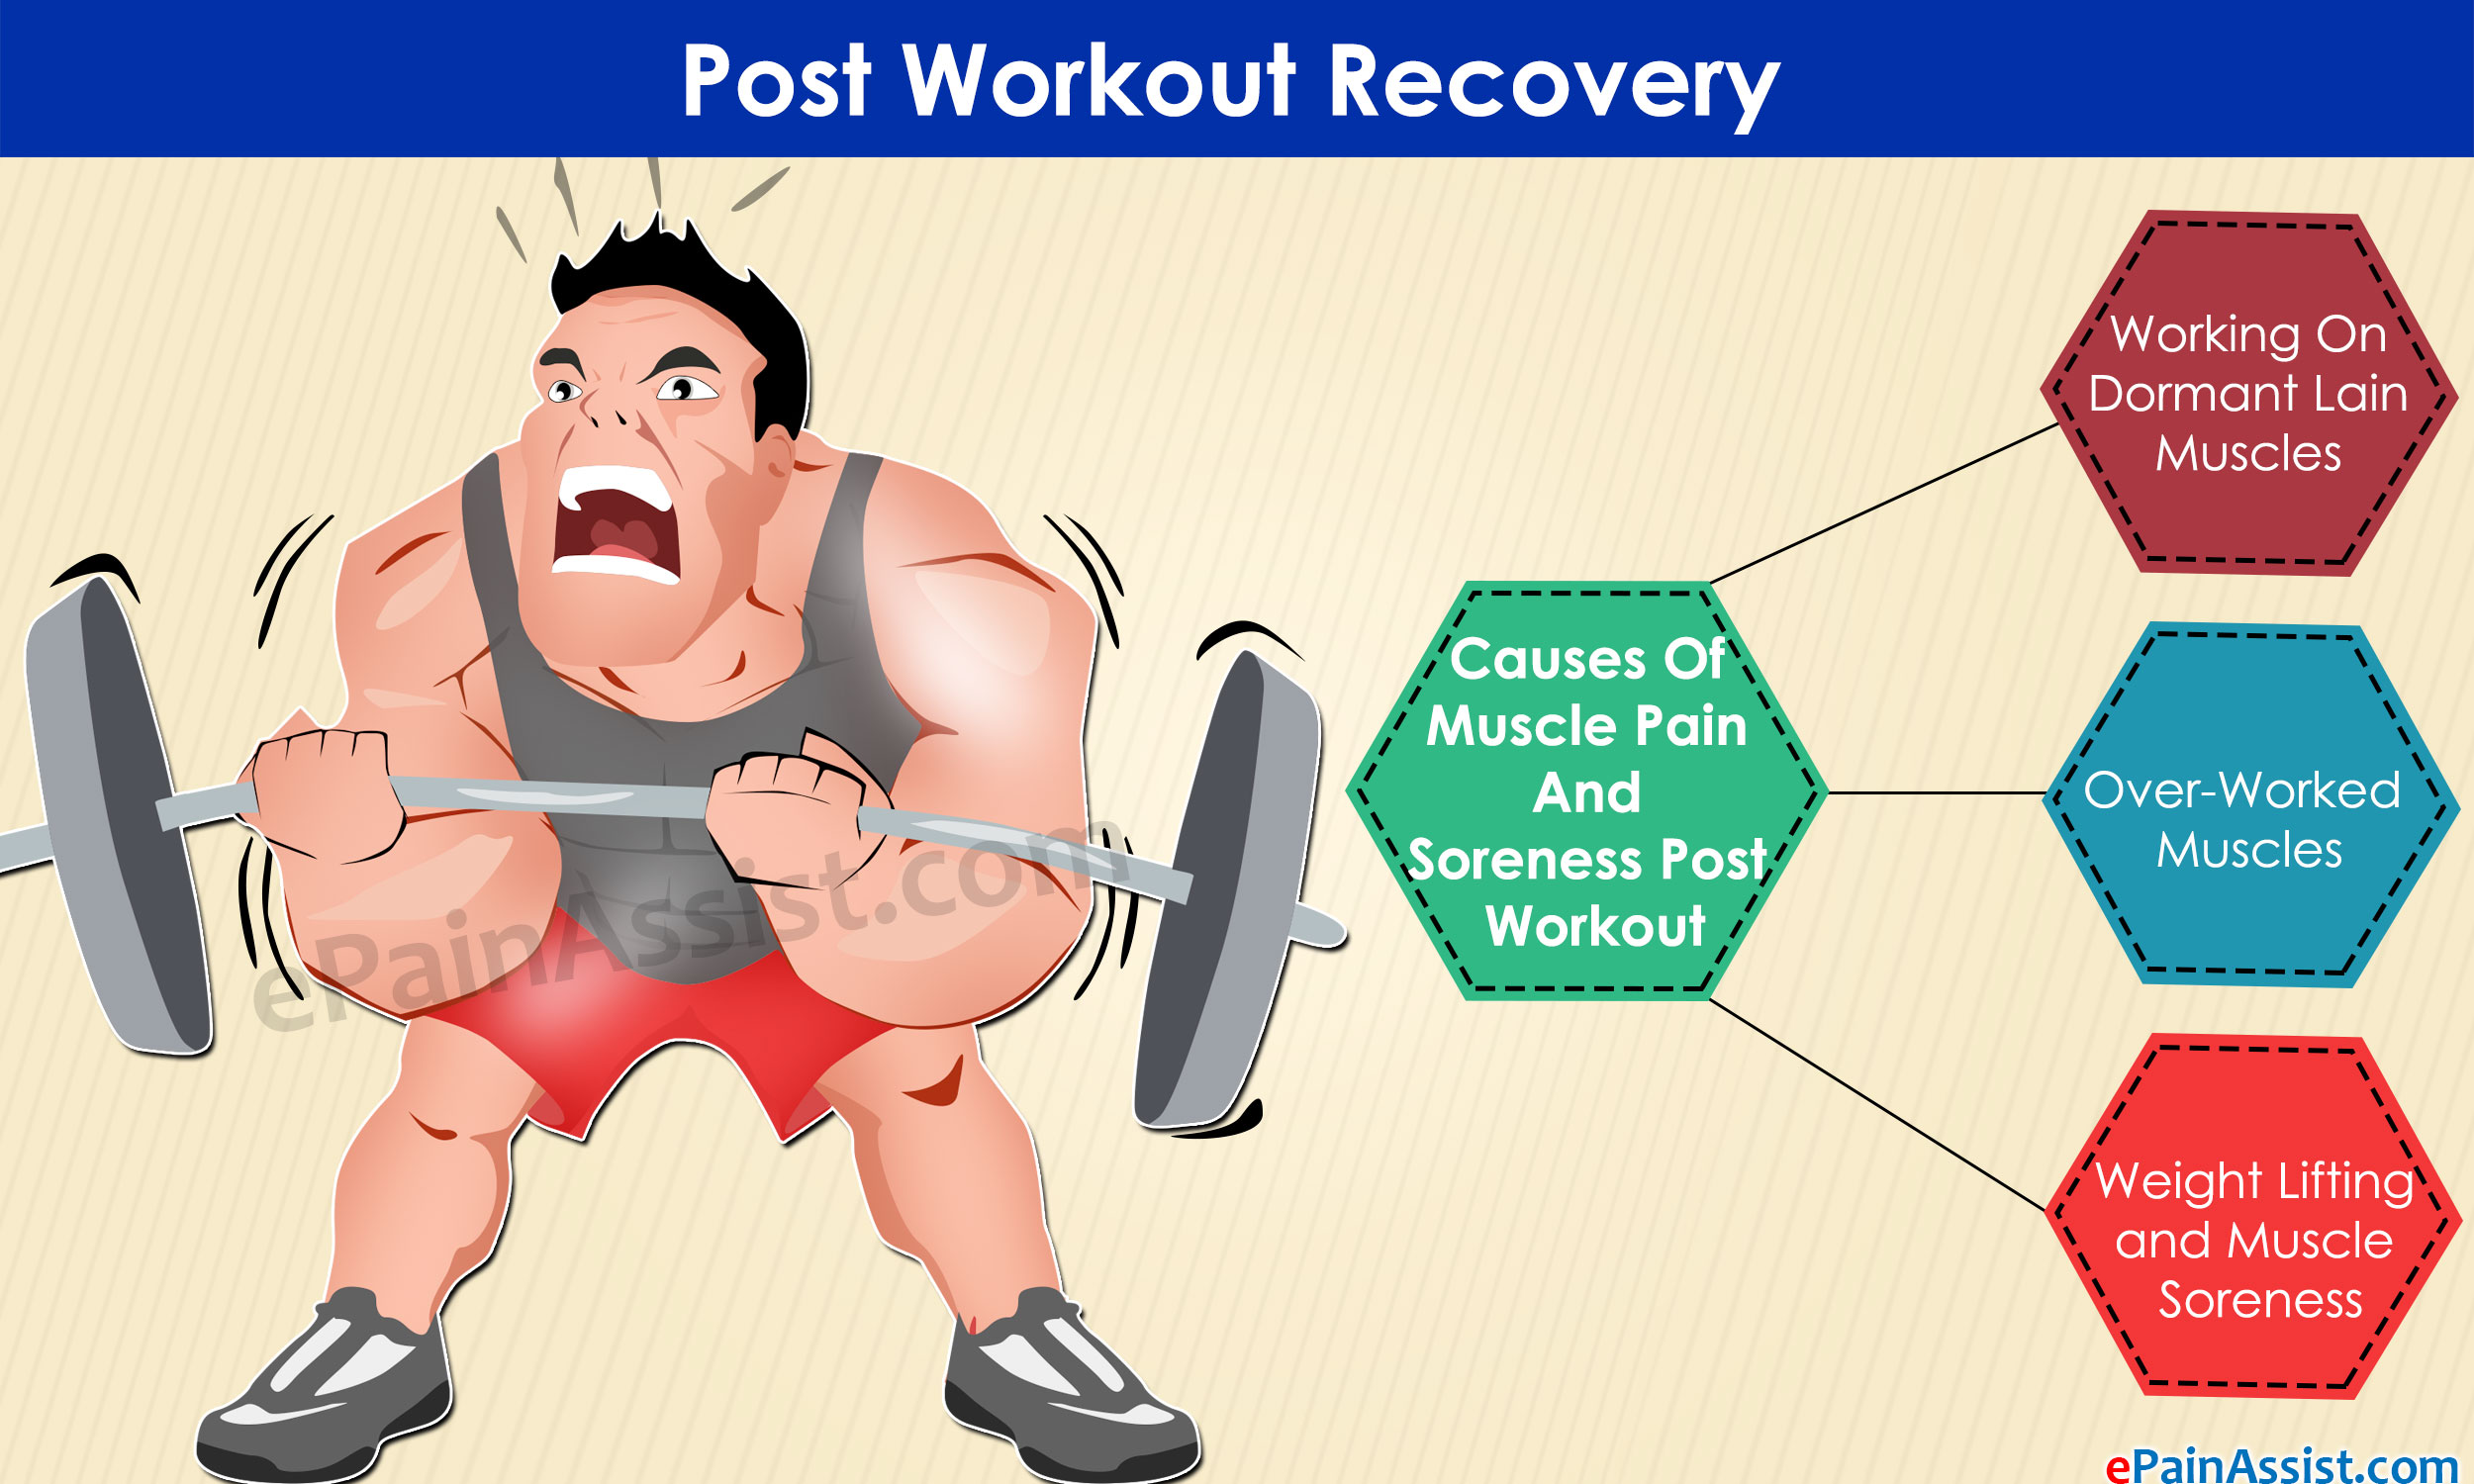 Post Workout Recovery Easing Muscle Pain And Soreness After